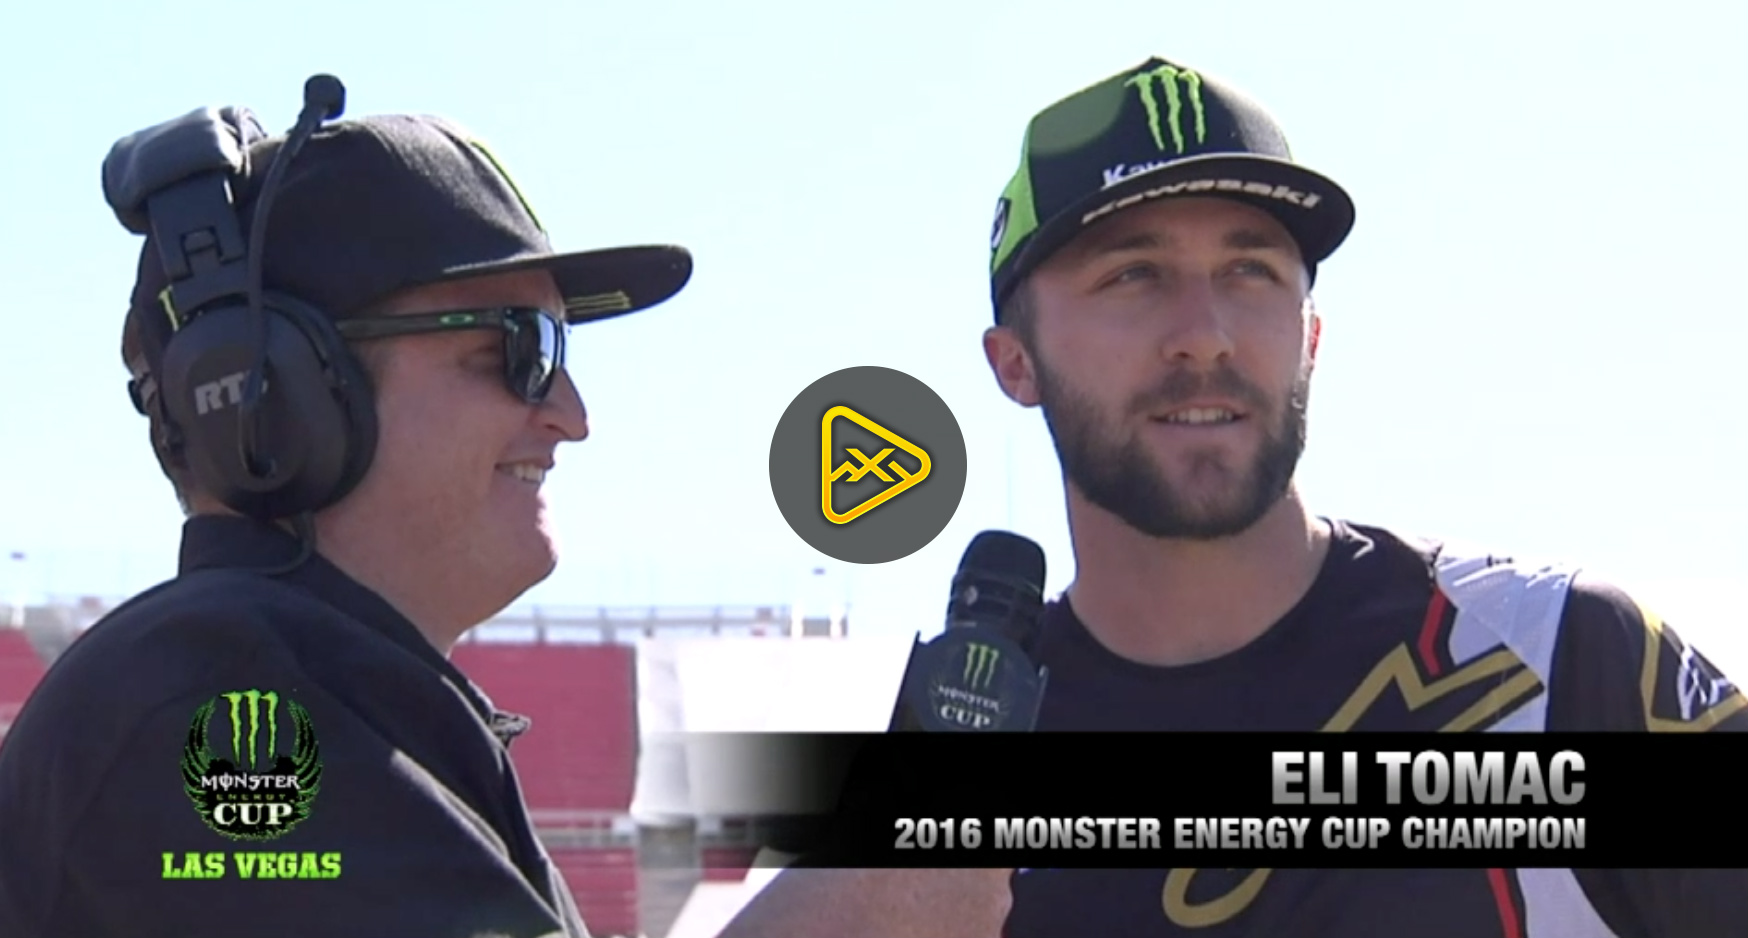 Live Press Event from 2018 Monster Energy Cup